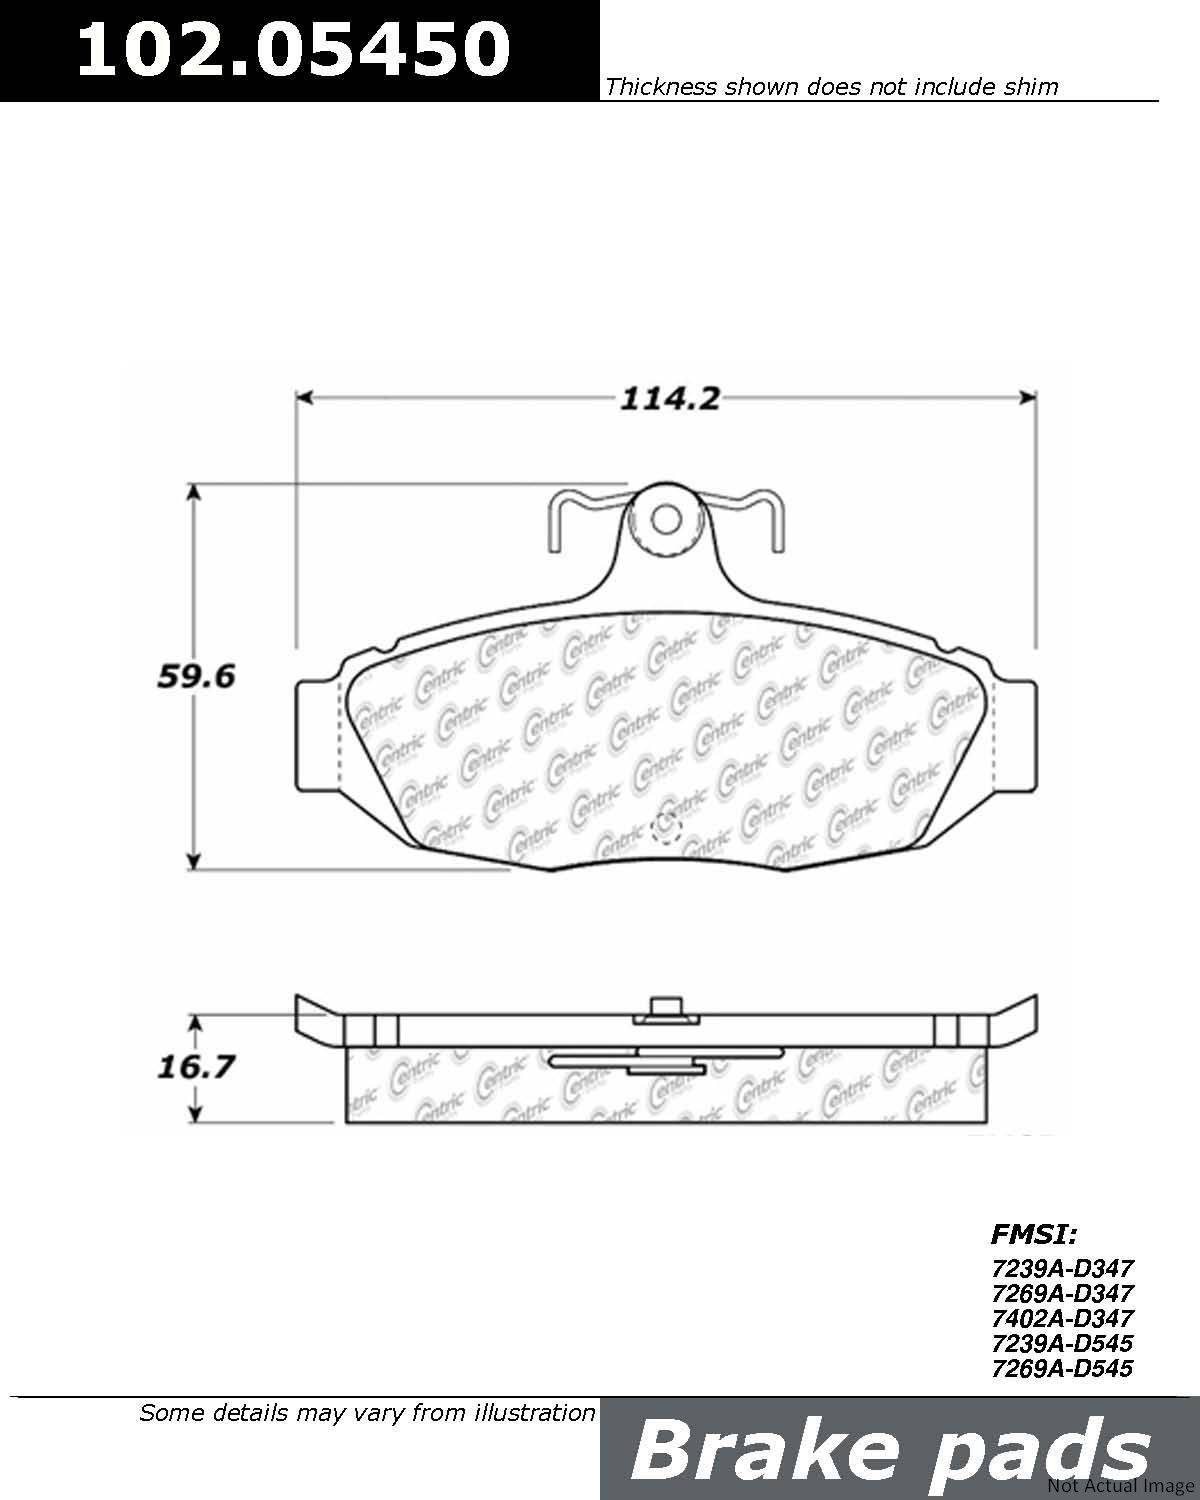 hight resolution of  1990 ford thunderbird disc brake pad set ce 102 05450